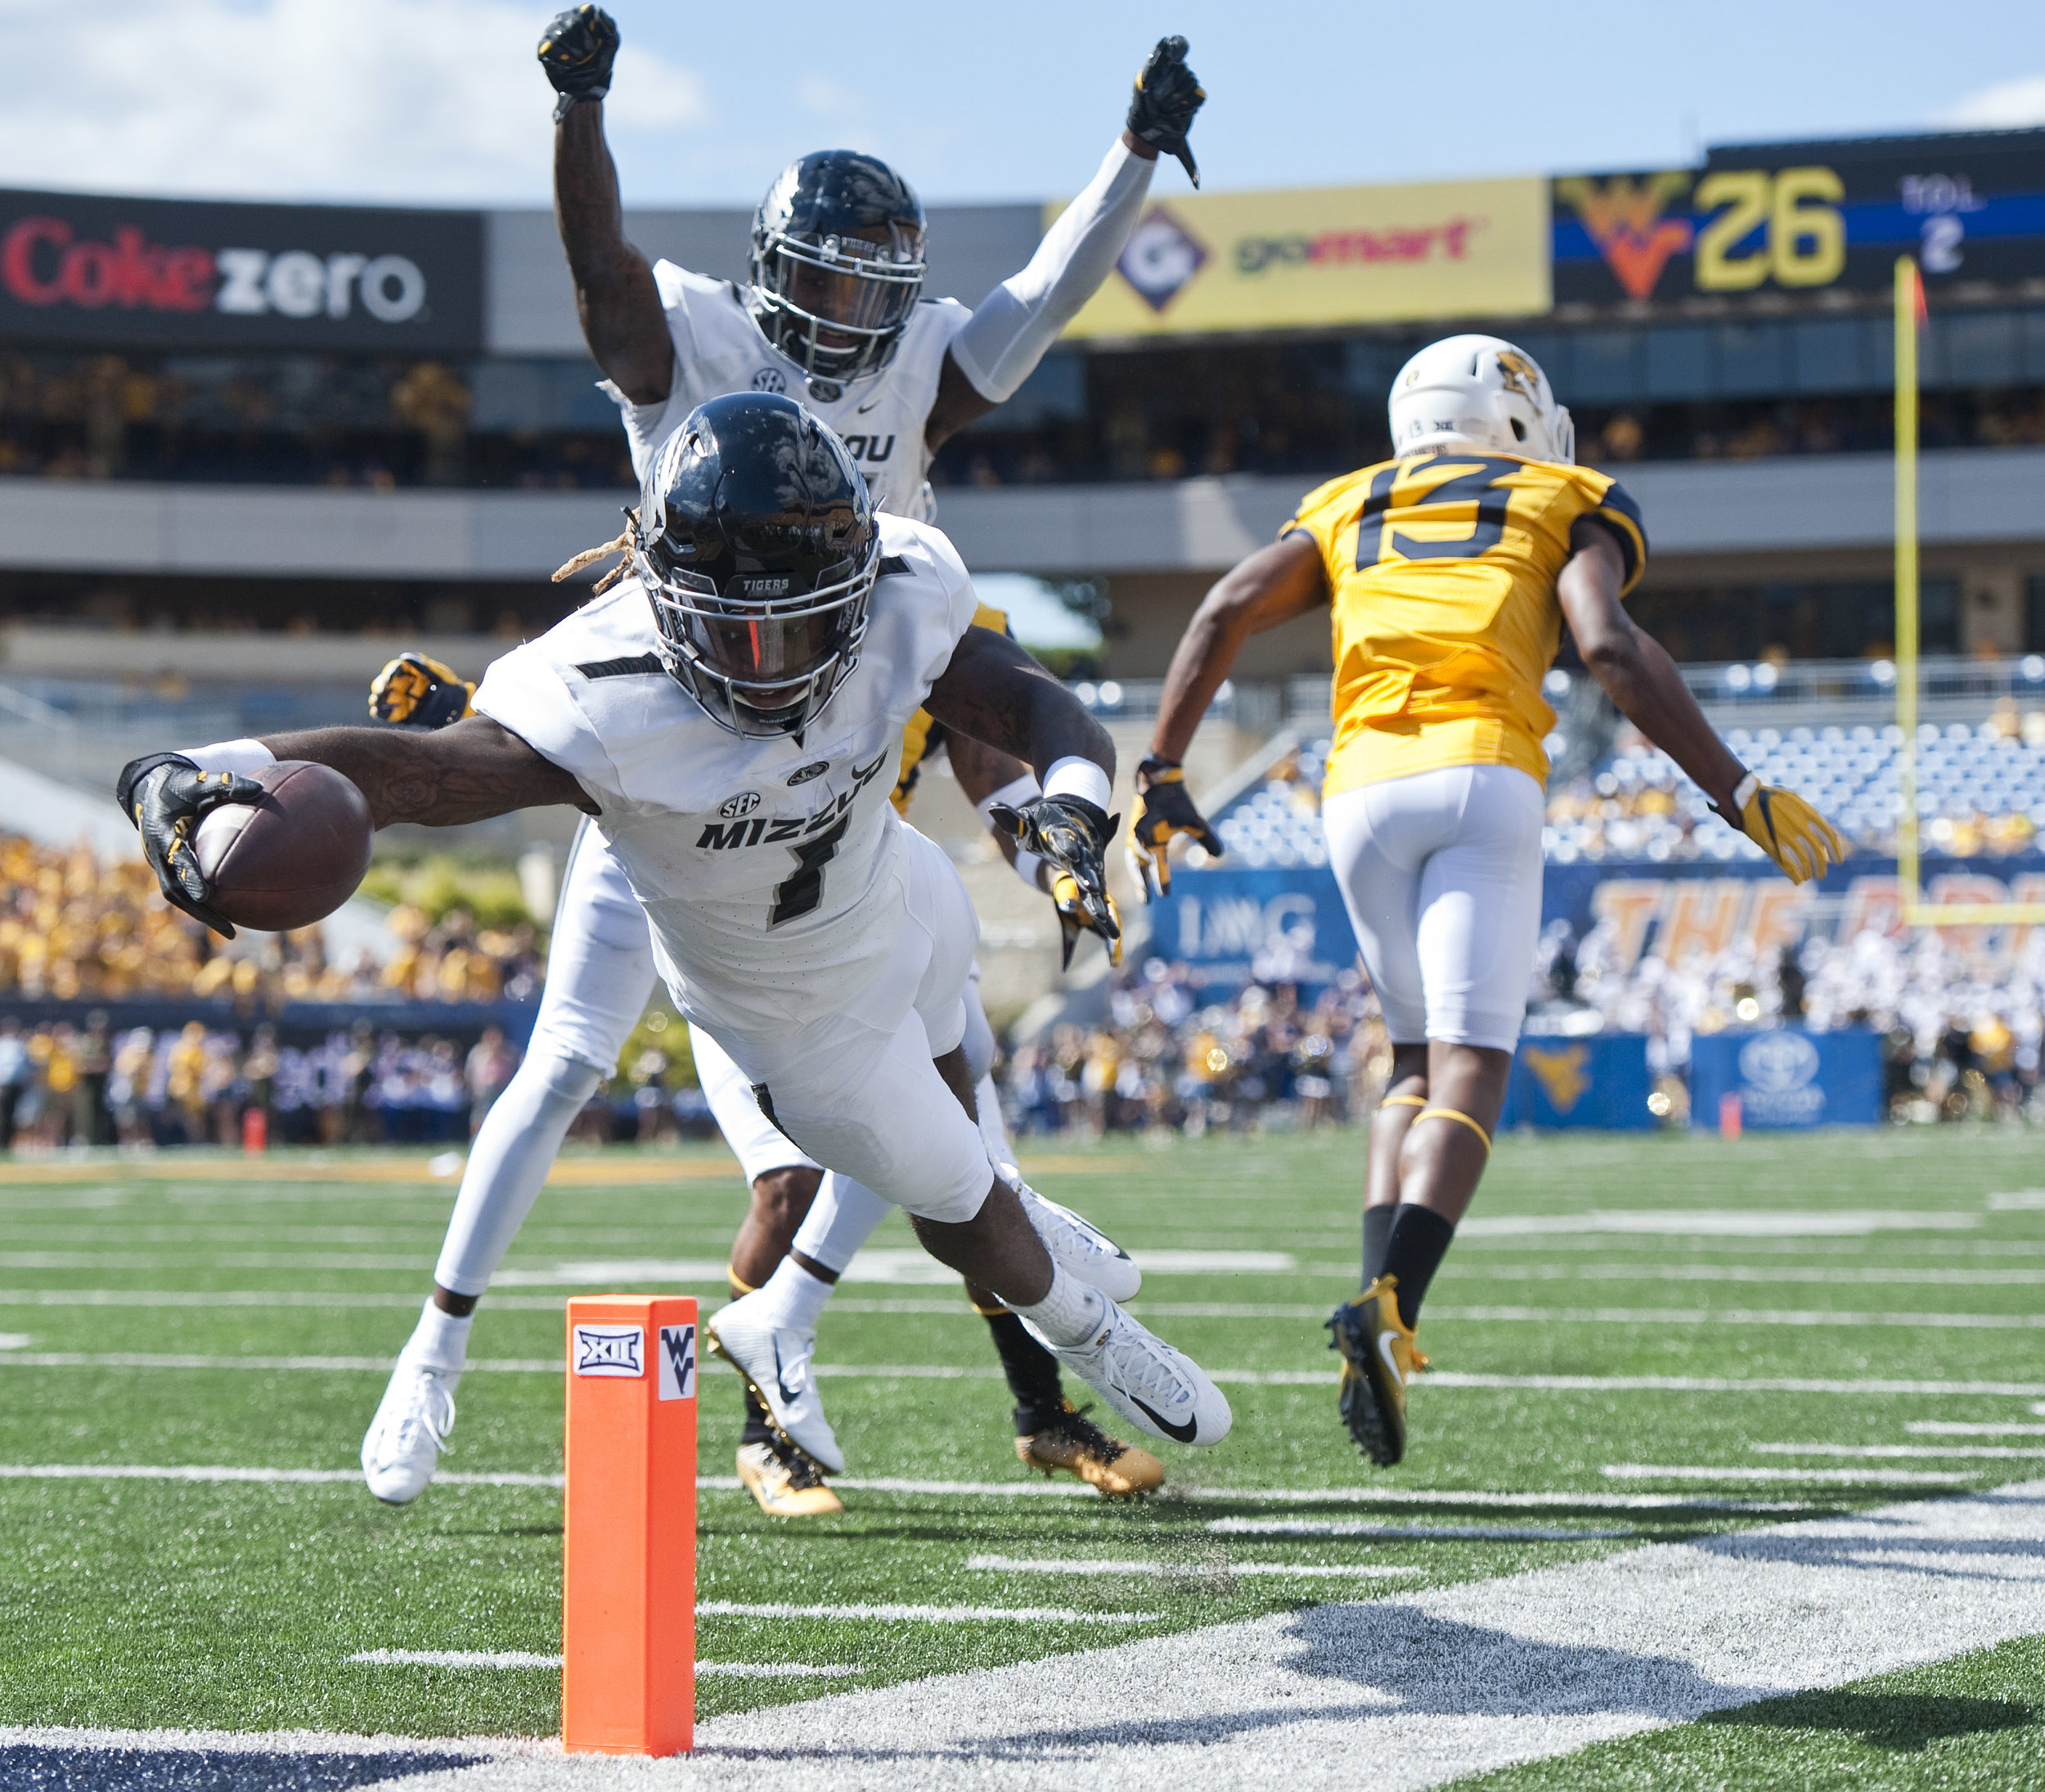 Missouri wide receiver Chris Black #1 dives into the end zone for a touchdown against West Virginia during an NCAA football game on Saturday, Sept. 3, 2016 at Milan Puskar Stadium in Morgantown, W.Va. WVU won 26-11.